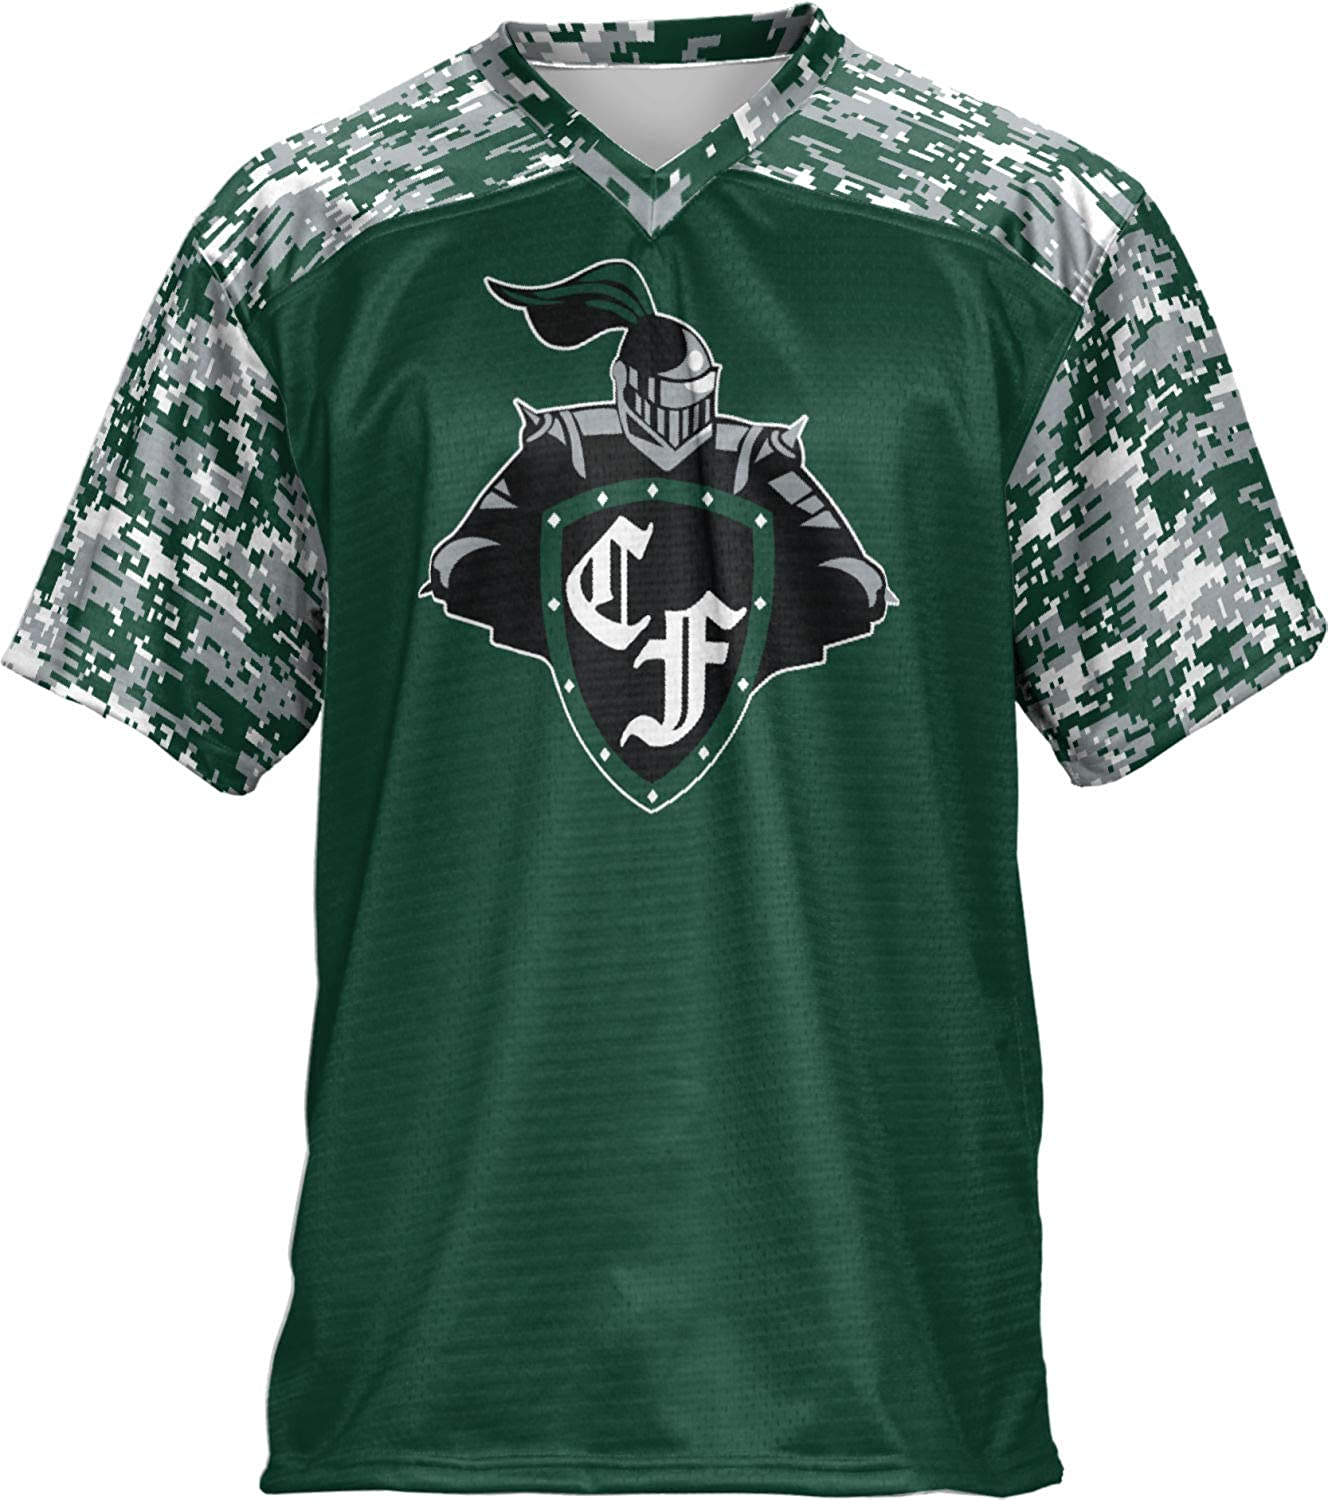 ProSphere Safety and trust Clear Falls High School Football Max 81% OFF Jersey Men's Digital